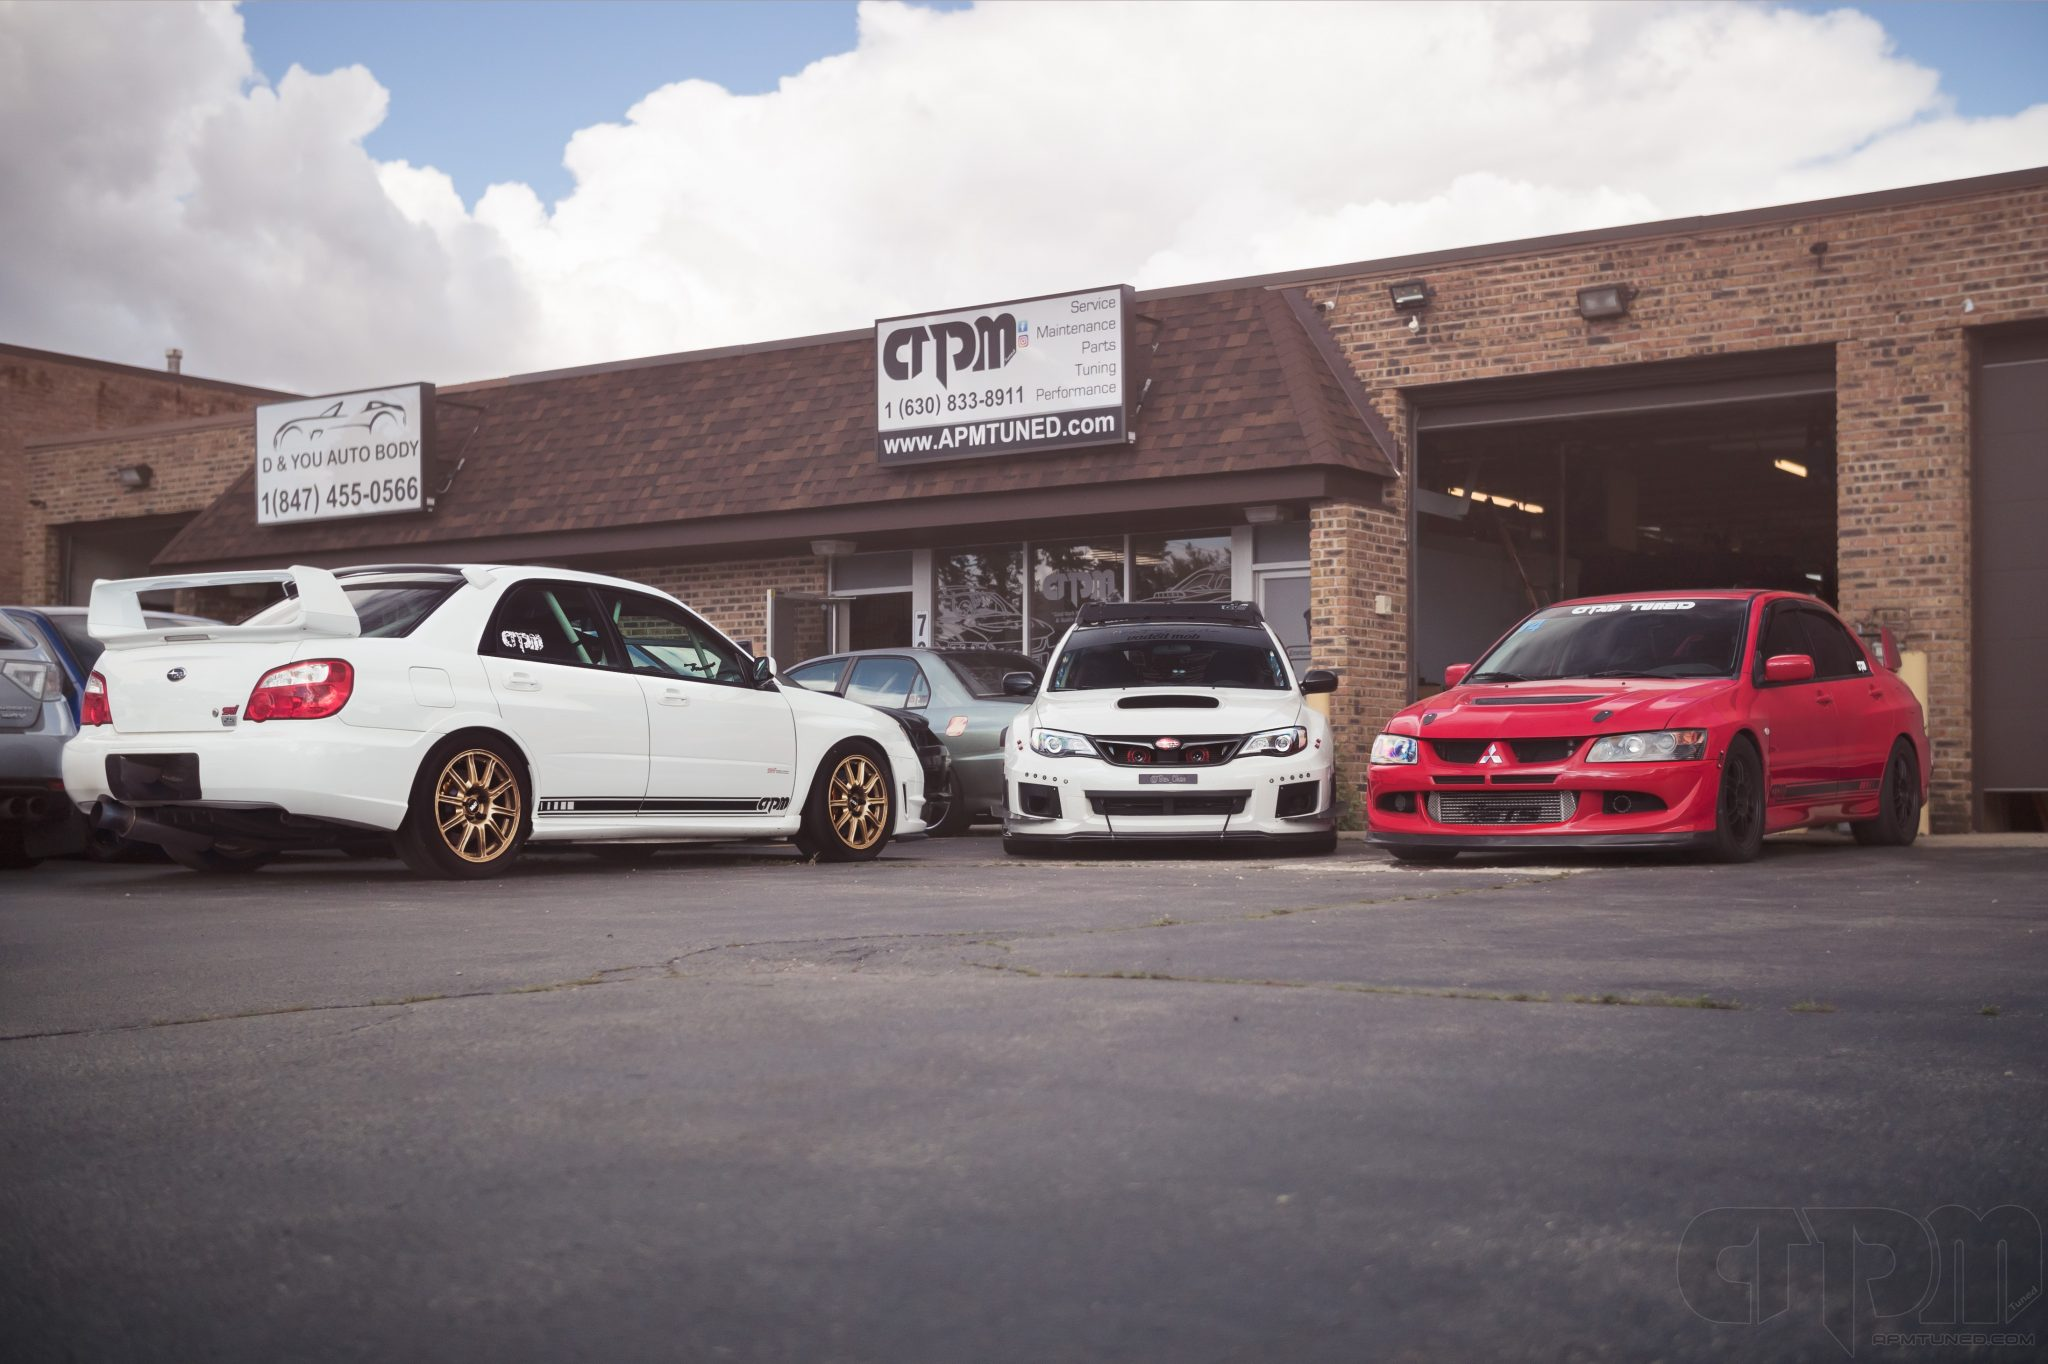 Our White Sponsored Subaru STi, White WRX Hatchback, and Shop Car Red EVO parked together infront of our Villa Park location